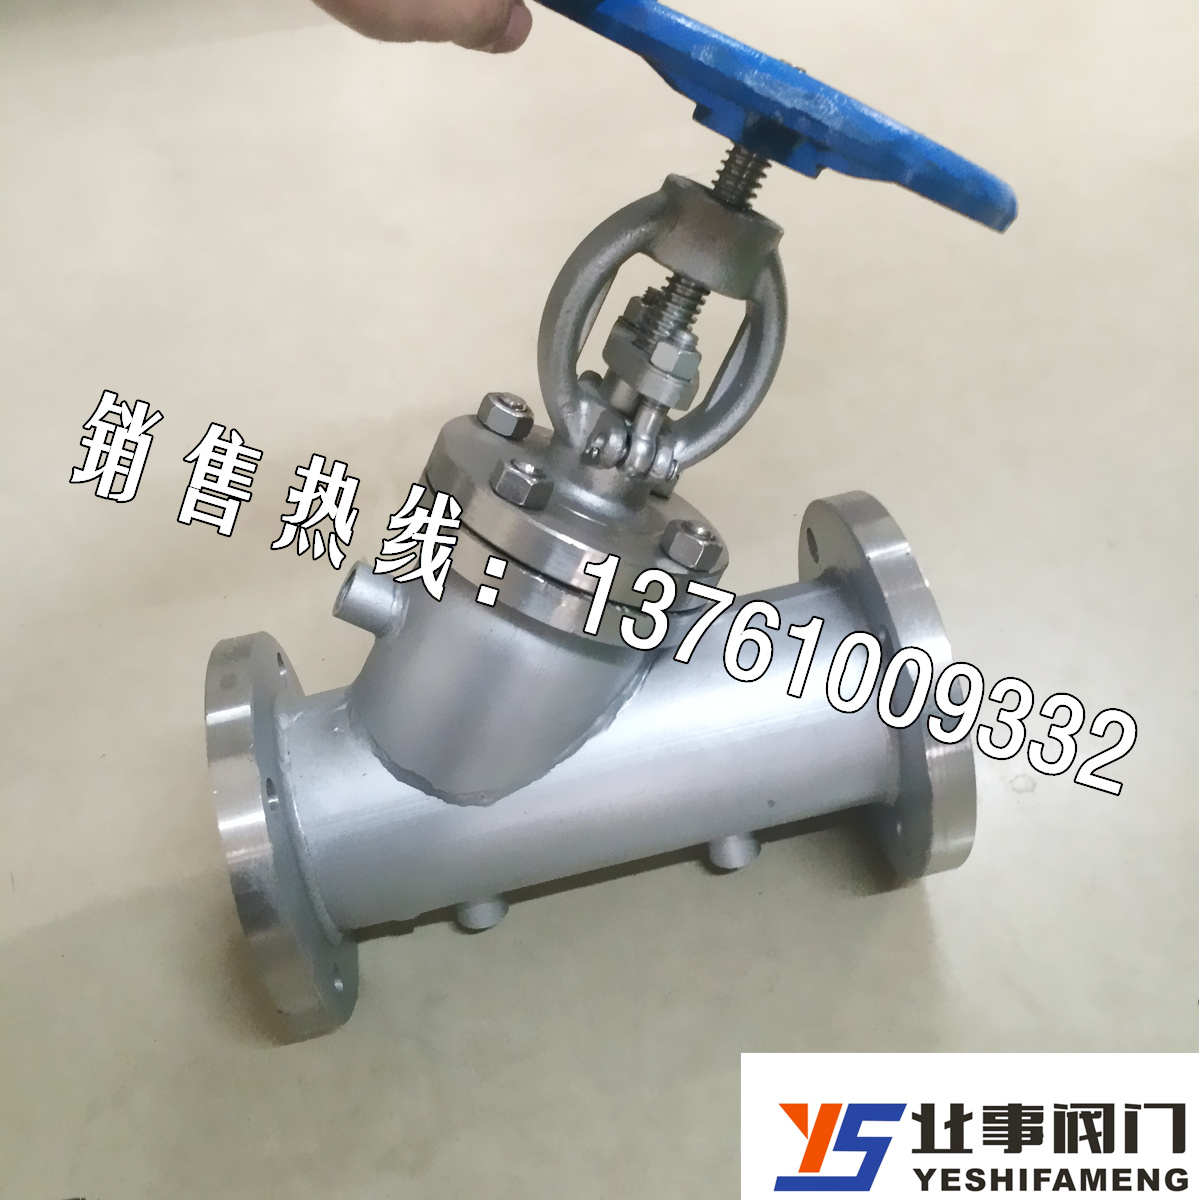 BJ45W-16P chemical corrosion resistant nitric acid acetic acid 304/316 stainless steel jacket insulation stop valve DN251 inch